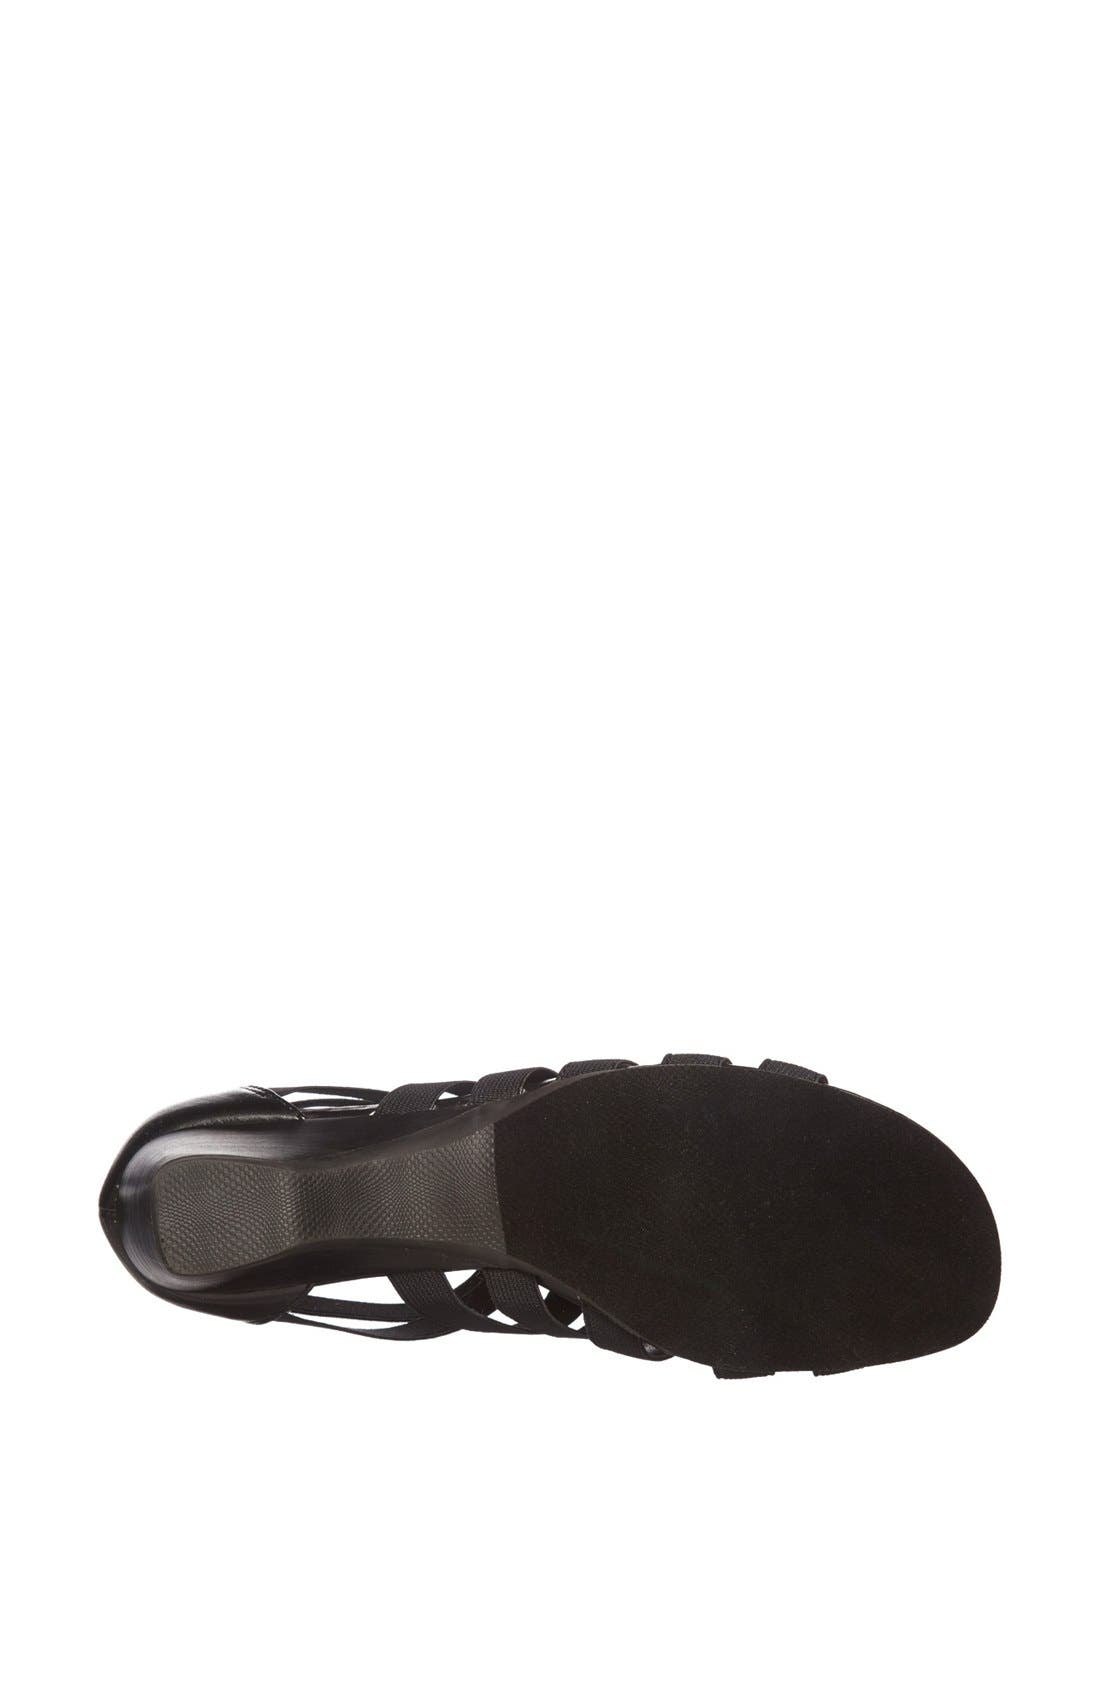 'Paula II' Sandal,                             Alternate thumbnail 4, color,                             Black